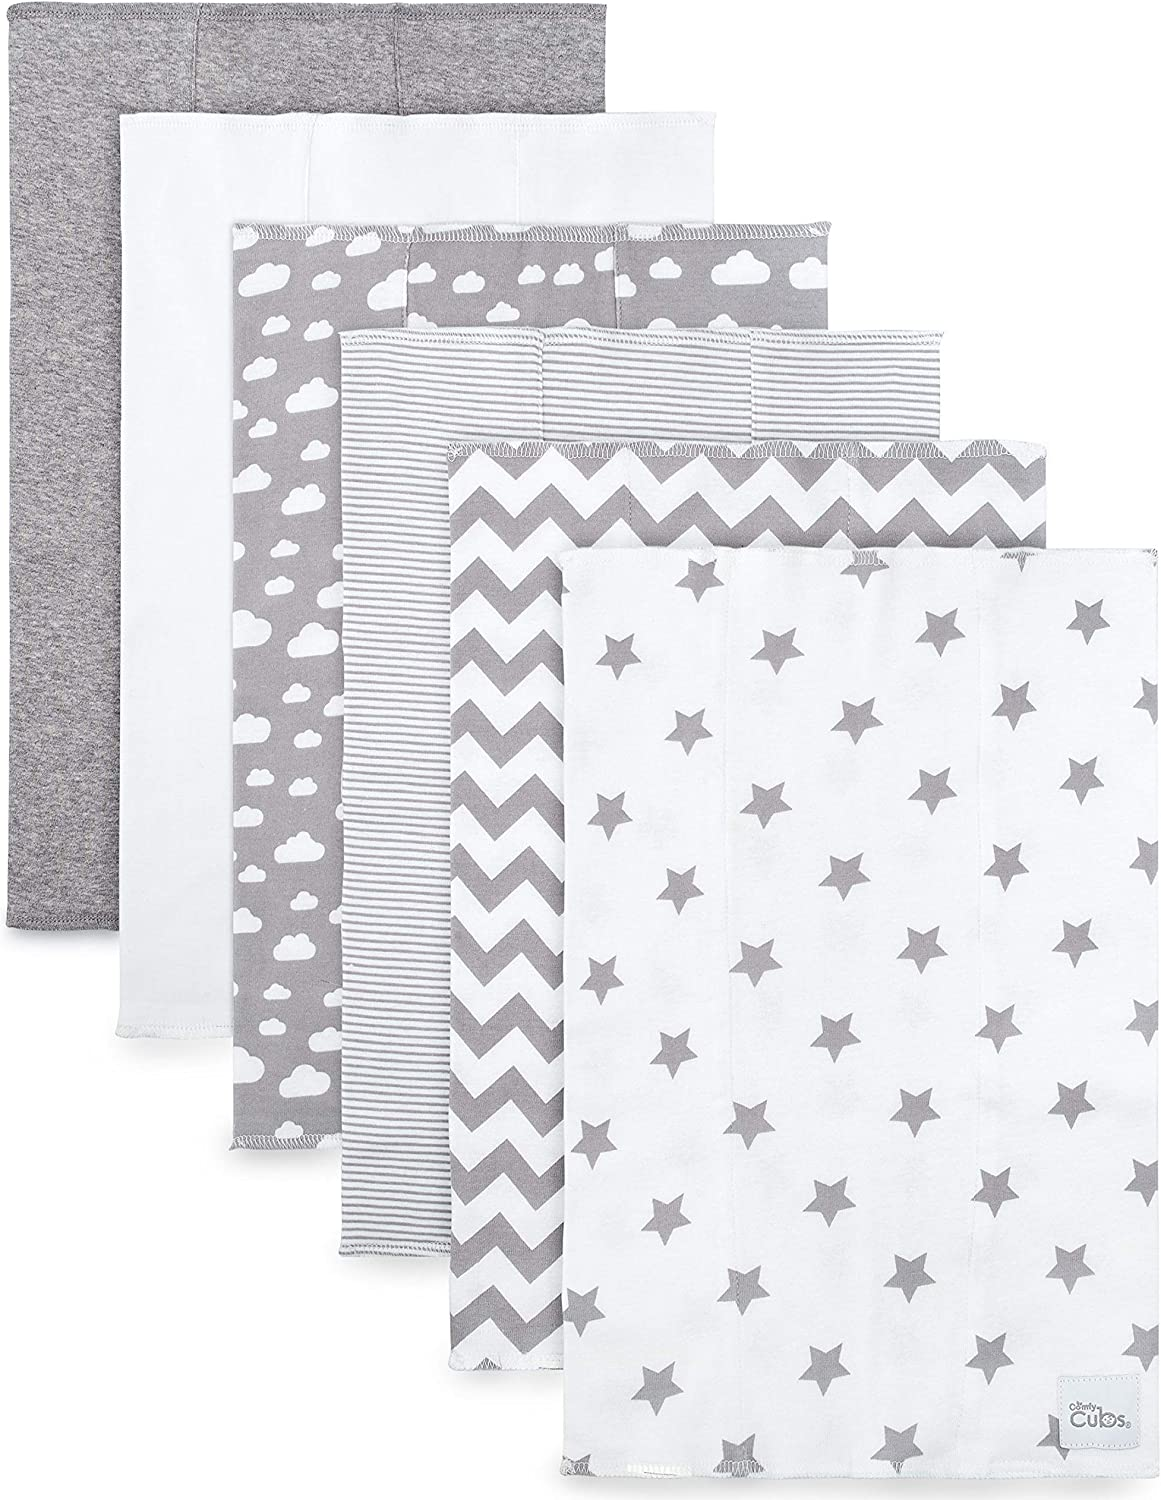 Comfy Cubs Burp Cloths 6 Pack Large 100% Cotton Washcloths Double Layered Burping Cloths Extra Absorbent and Soft for Boys and Girls (Grey Pattern)